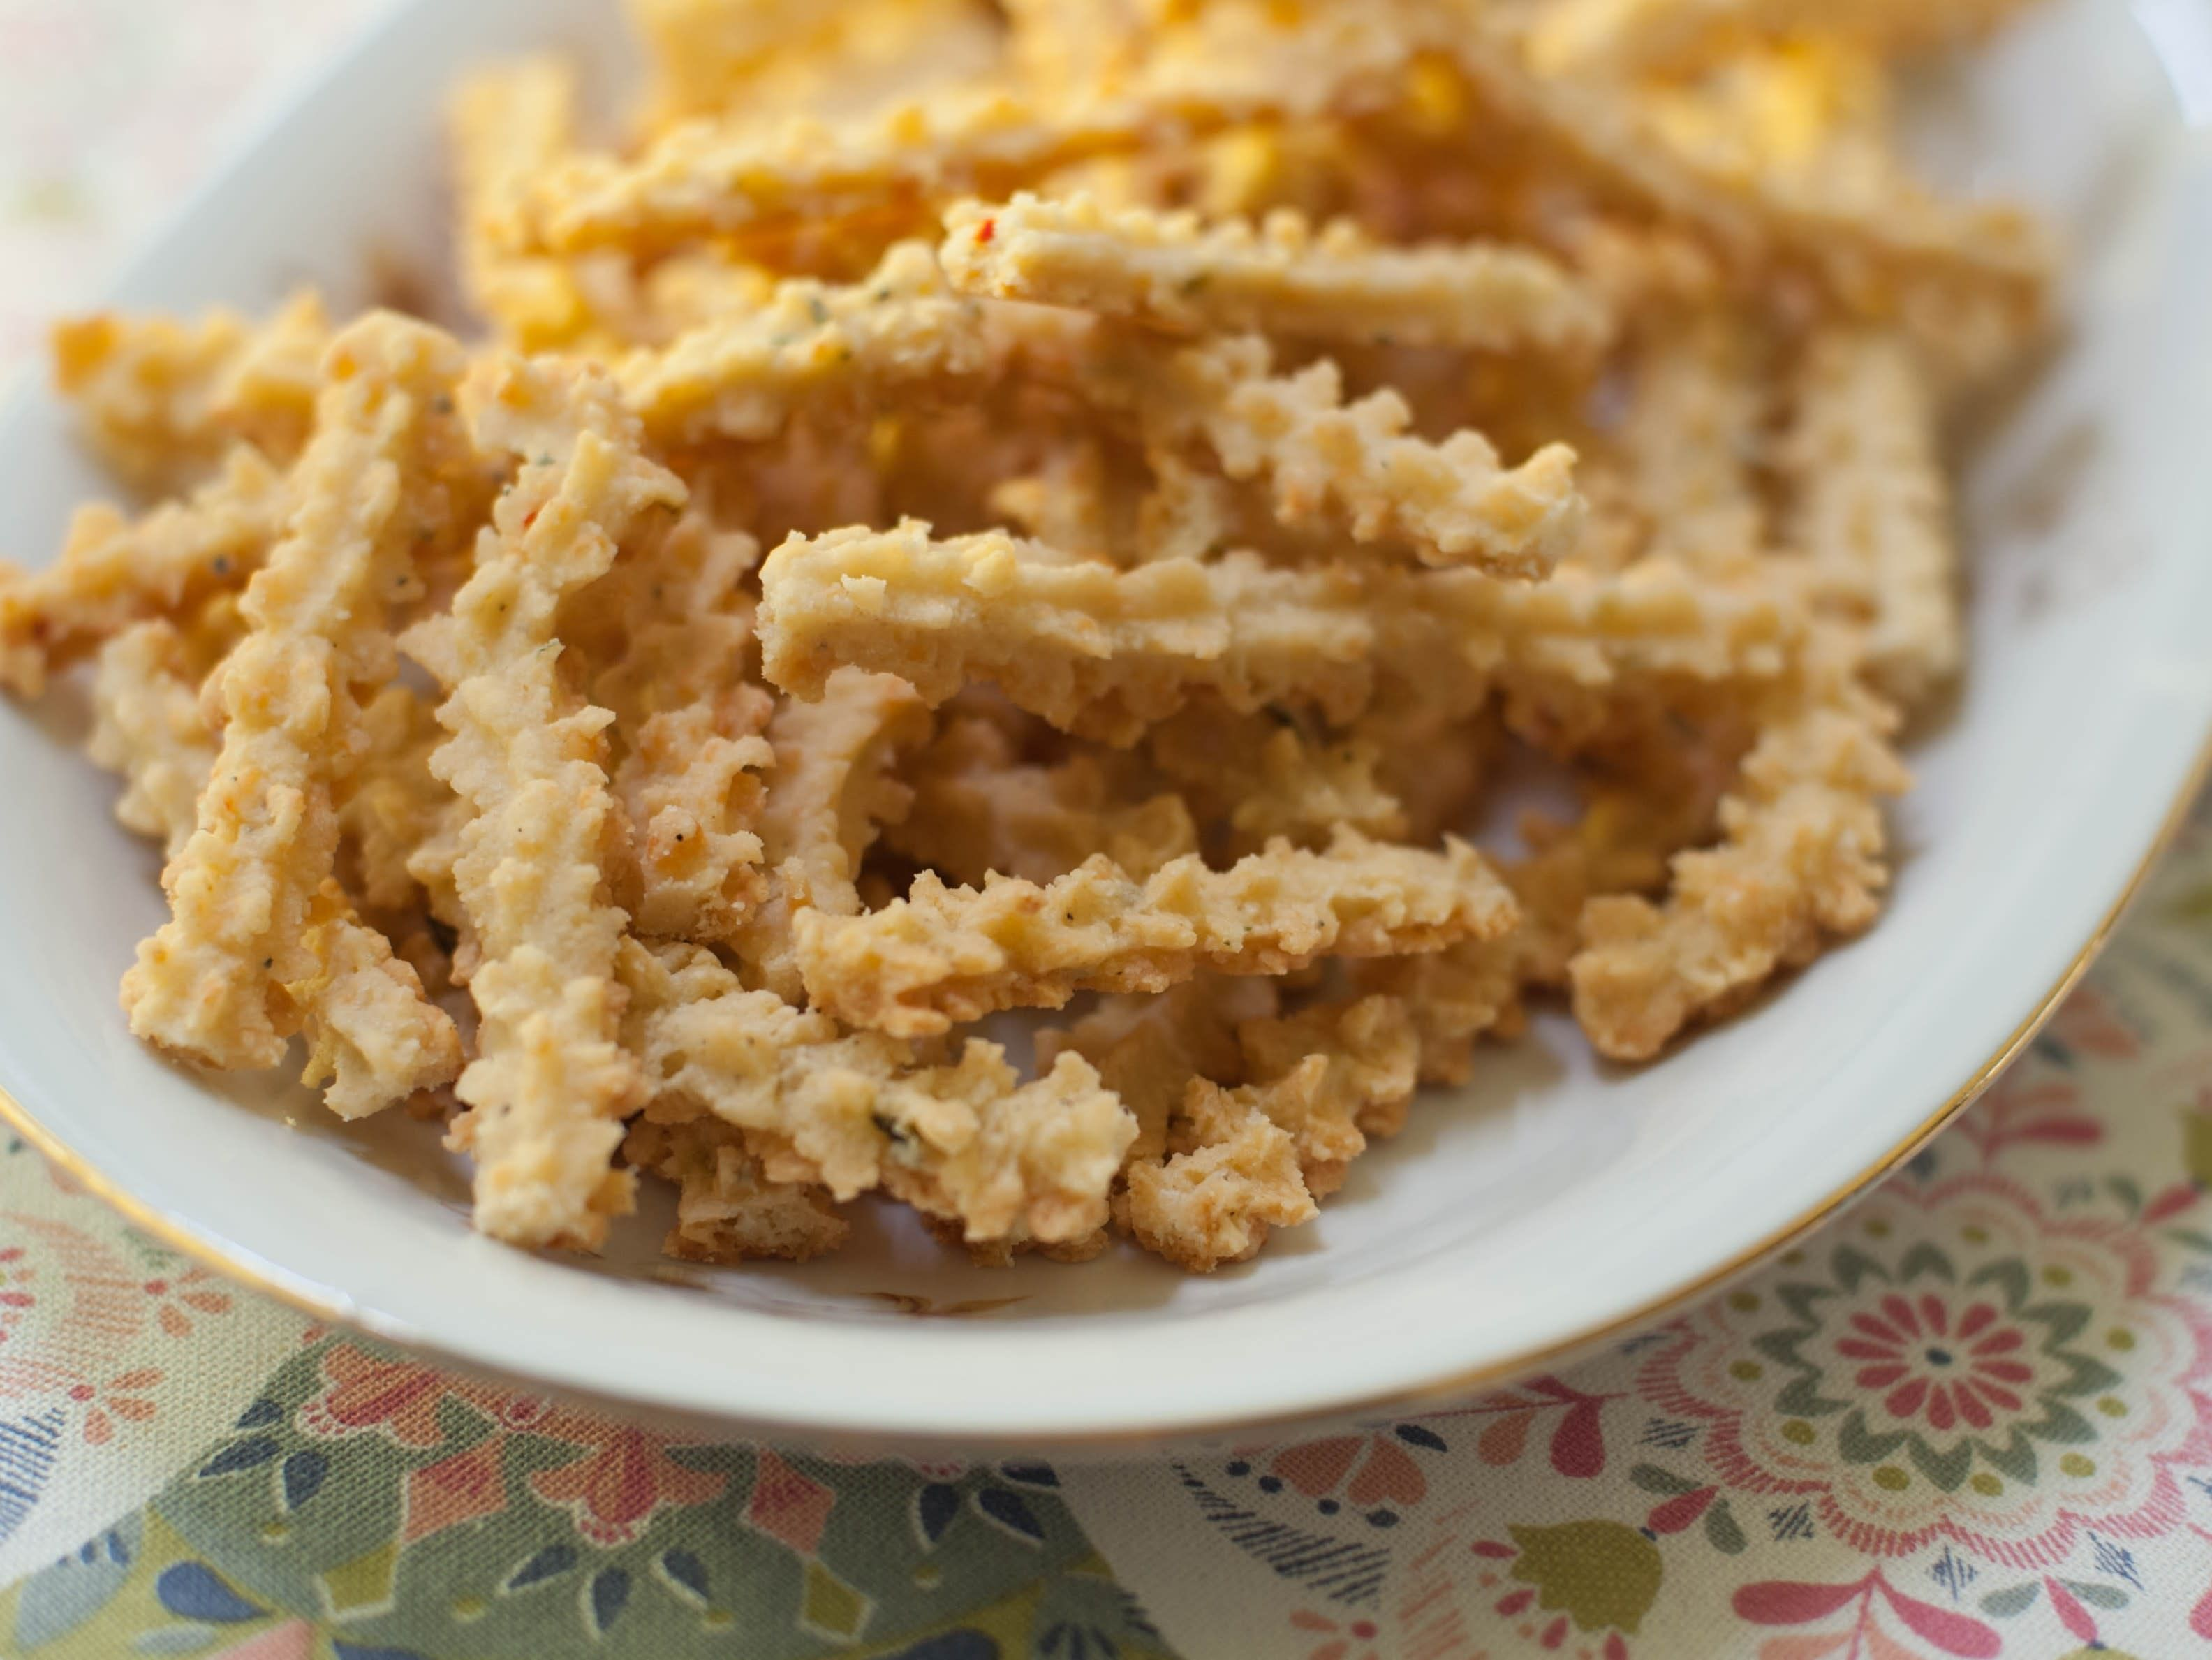 Pepper Jack Cheese Straws Recipe In 2020 Food Network Recipes Stuffed Peppers Cheese Straws